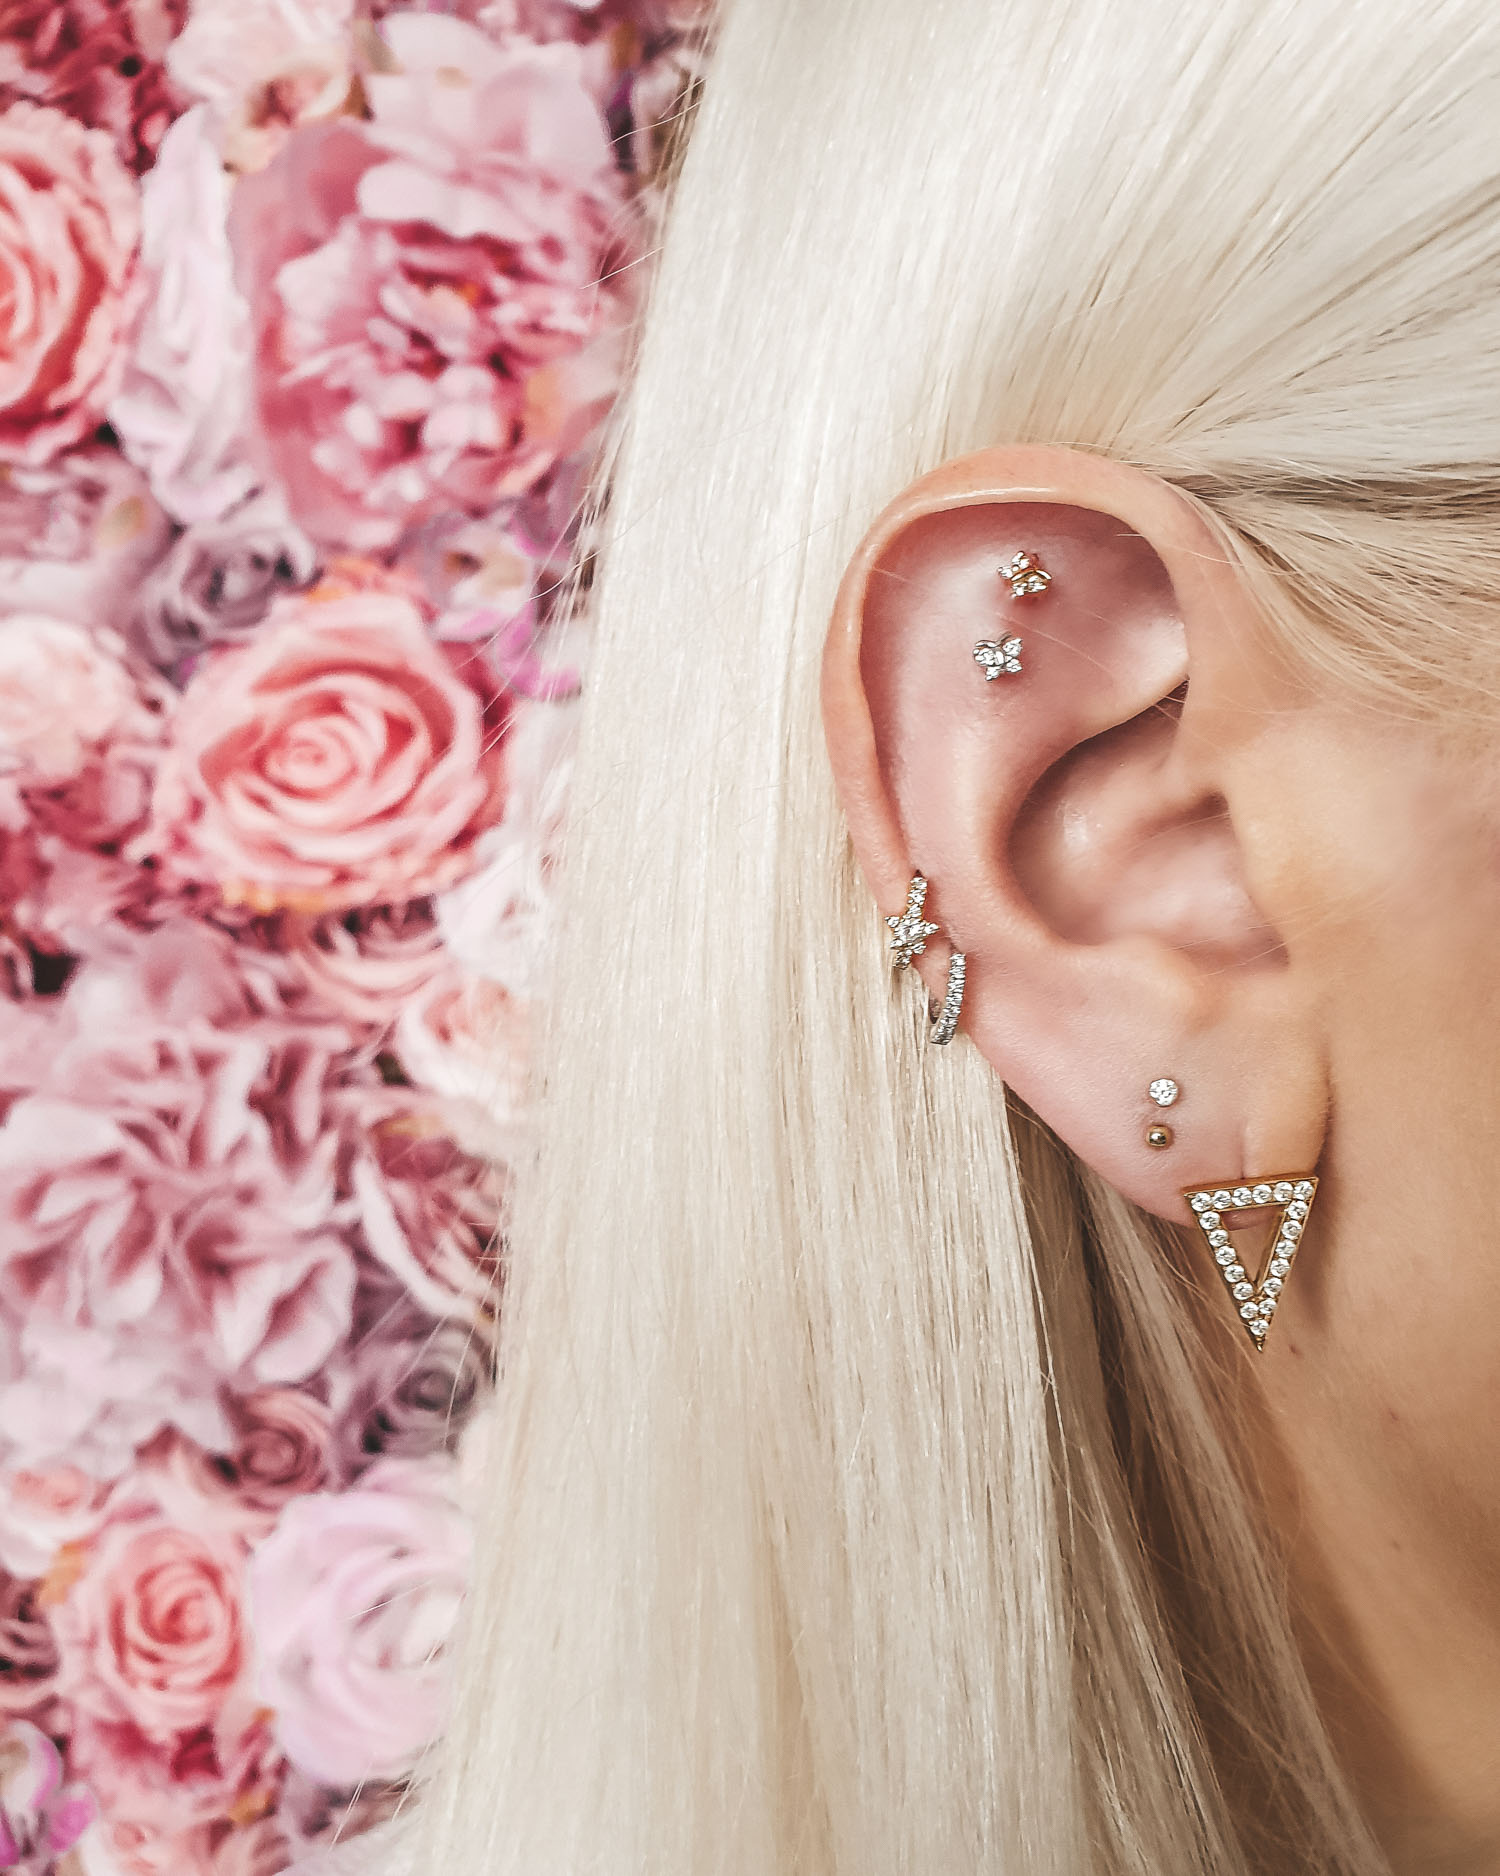 New piercings: double lobe piercings (the two next to the triangle earring)